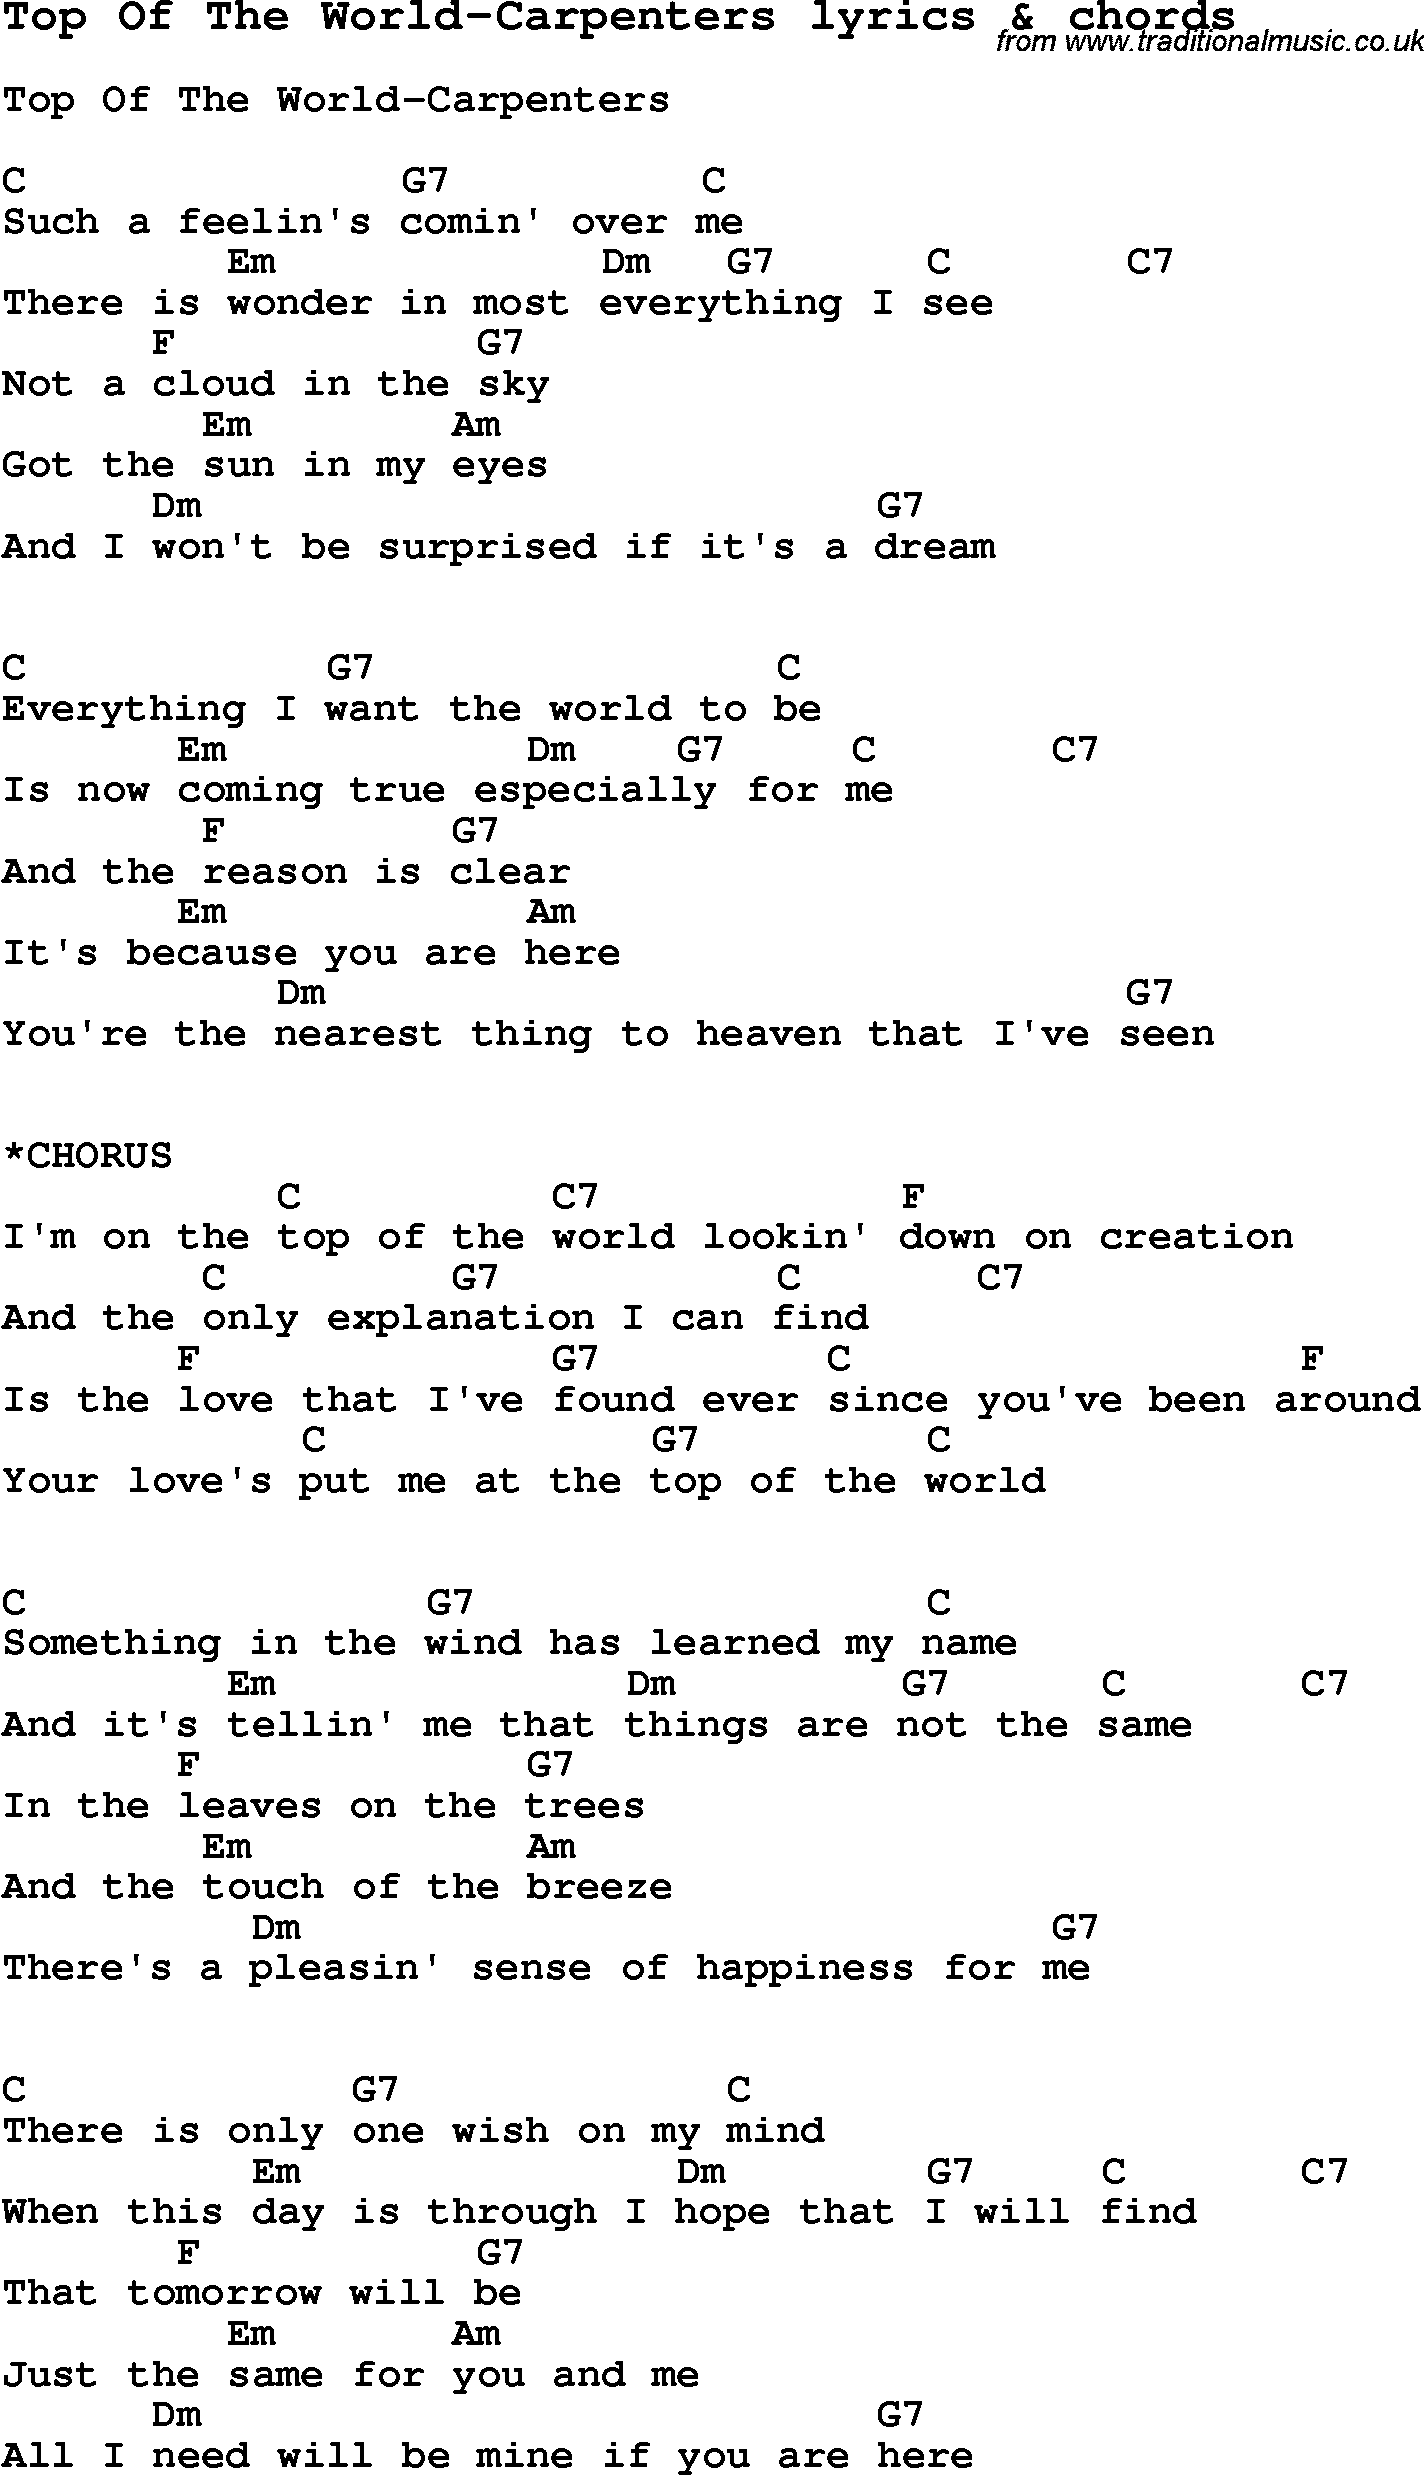 Love song lyrics for top of the world carpenters with chords for love song lyrics for top of the world carpenters with chords for ukulele hexwebz Gallery